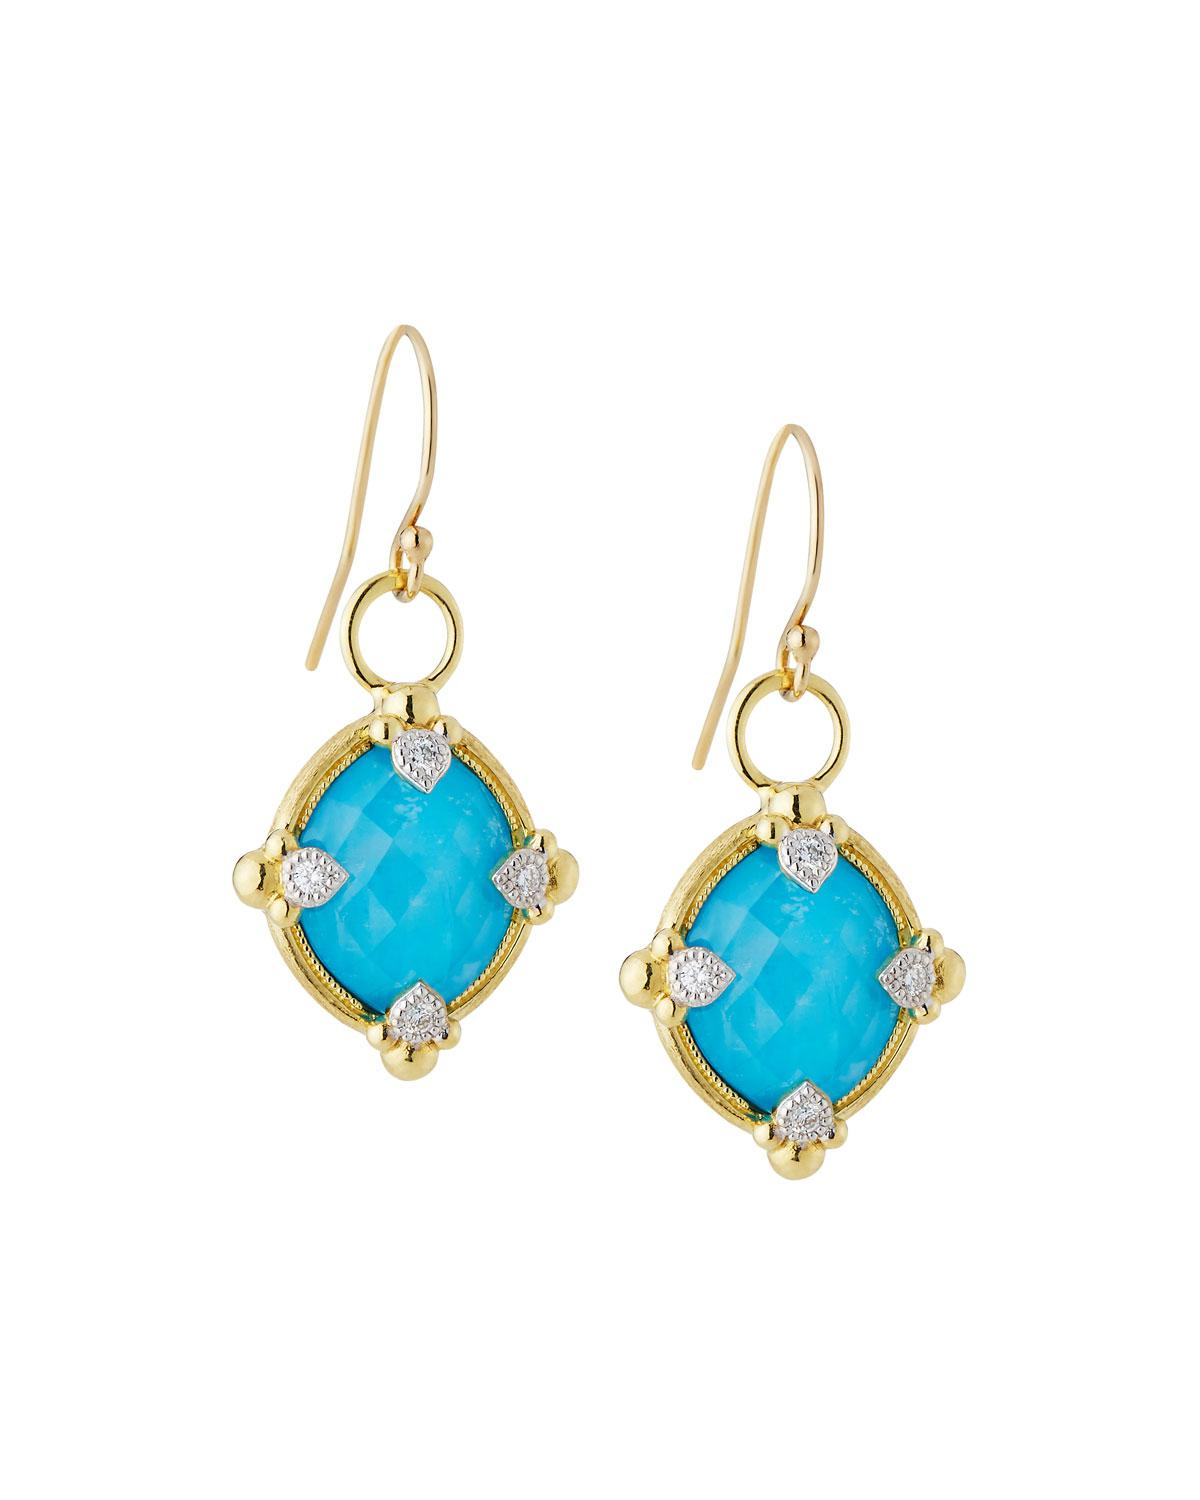 Jude Frances Lisse 18K Dangle/Drop Earrings with Turquoise WNvMYIyx4